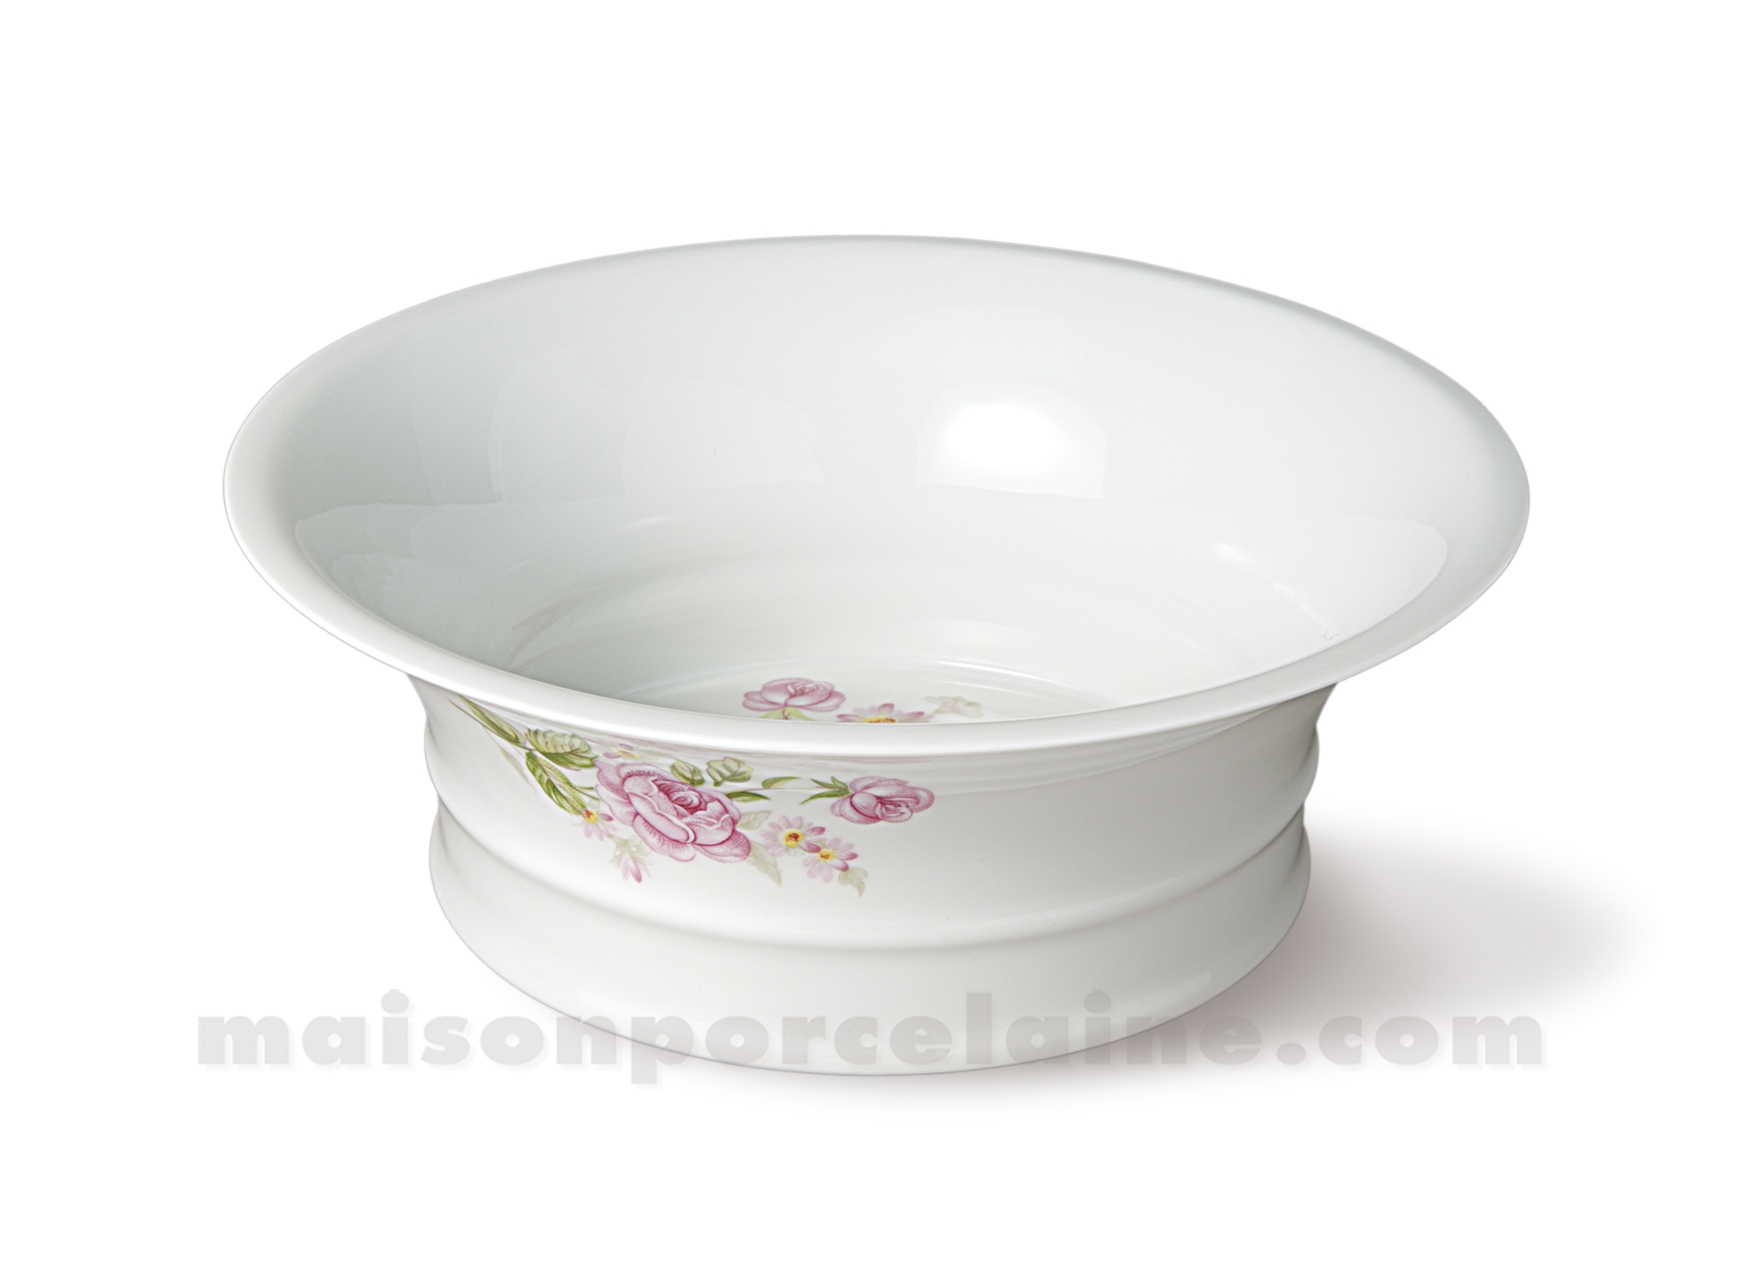 Coupe Limoges Empire Gm D19 Maison De La Porcelaine